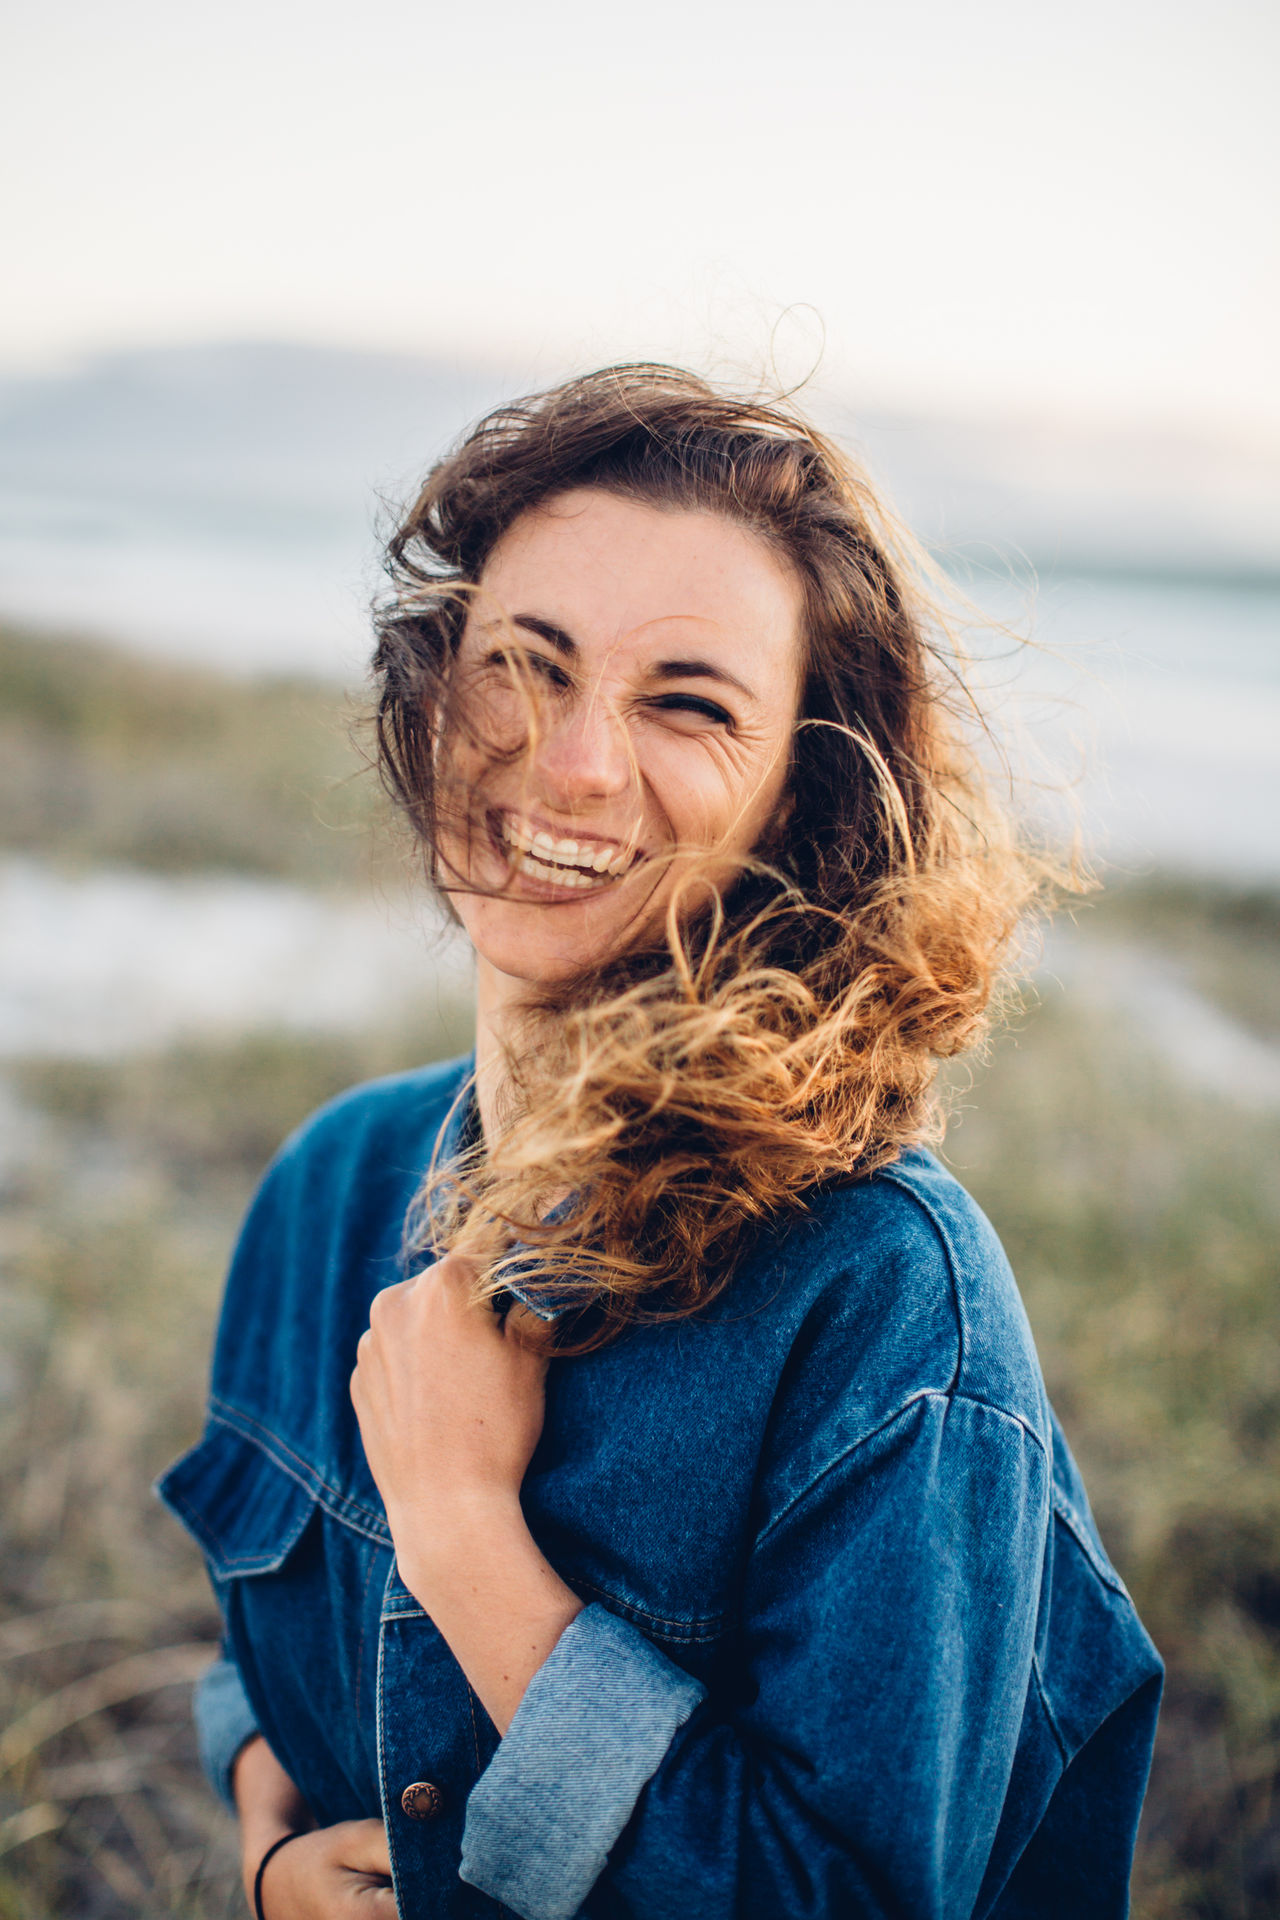 Portrait of cheerful young woman standing at beach against clear sky during sunset